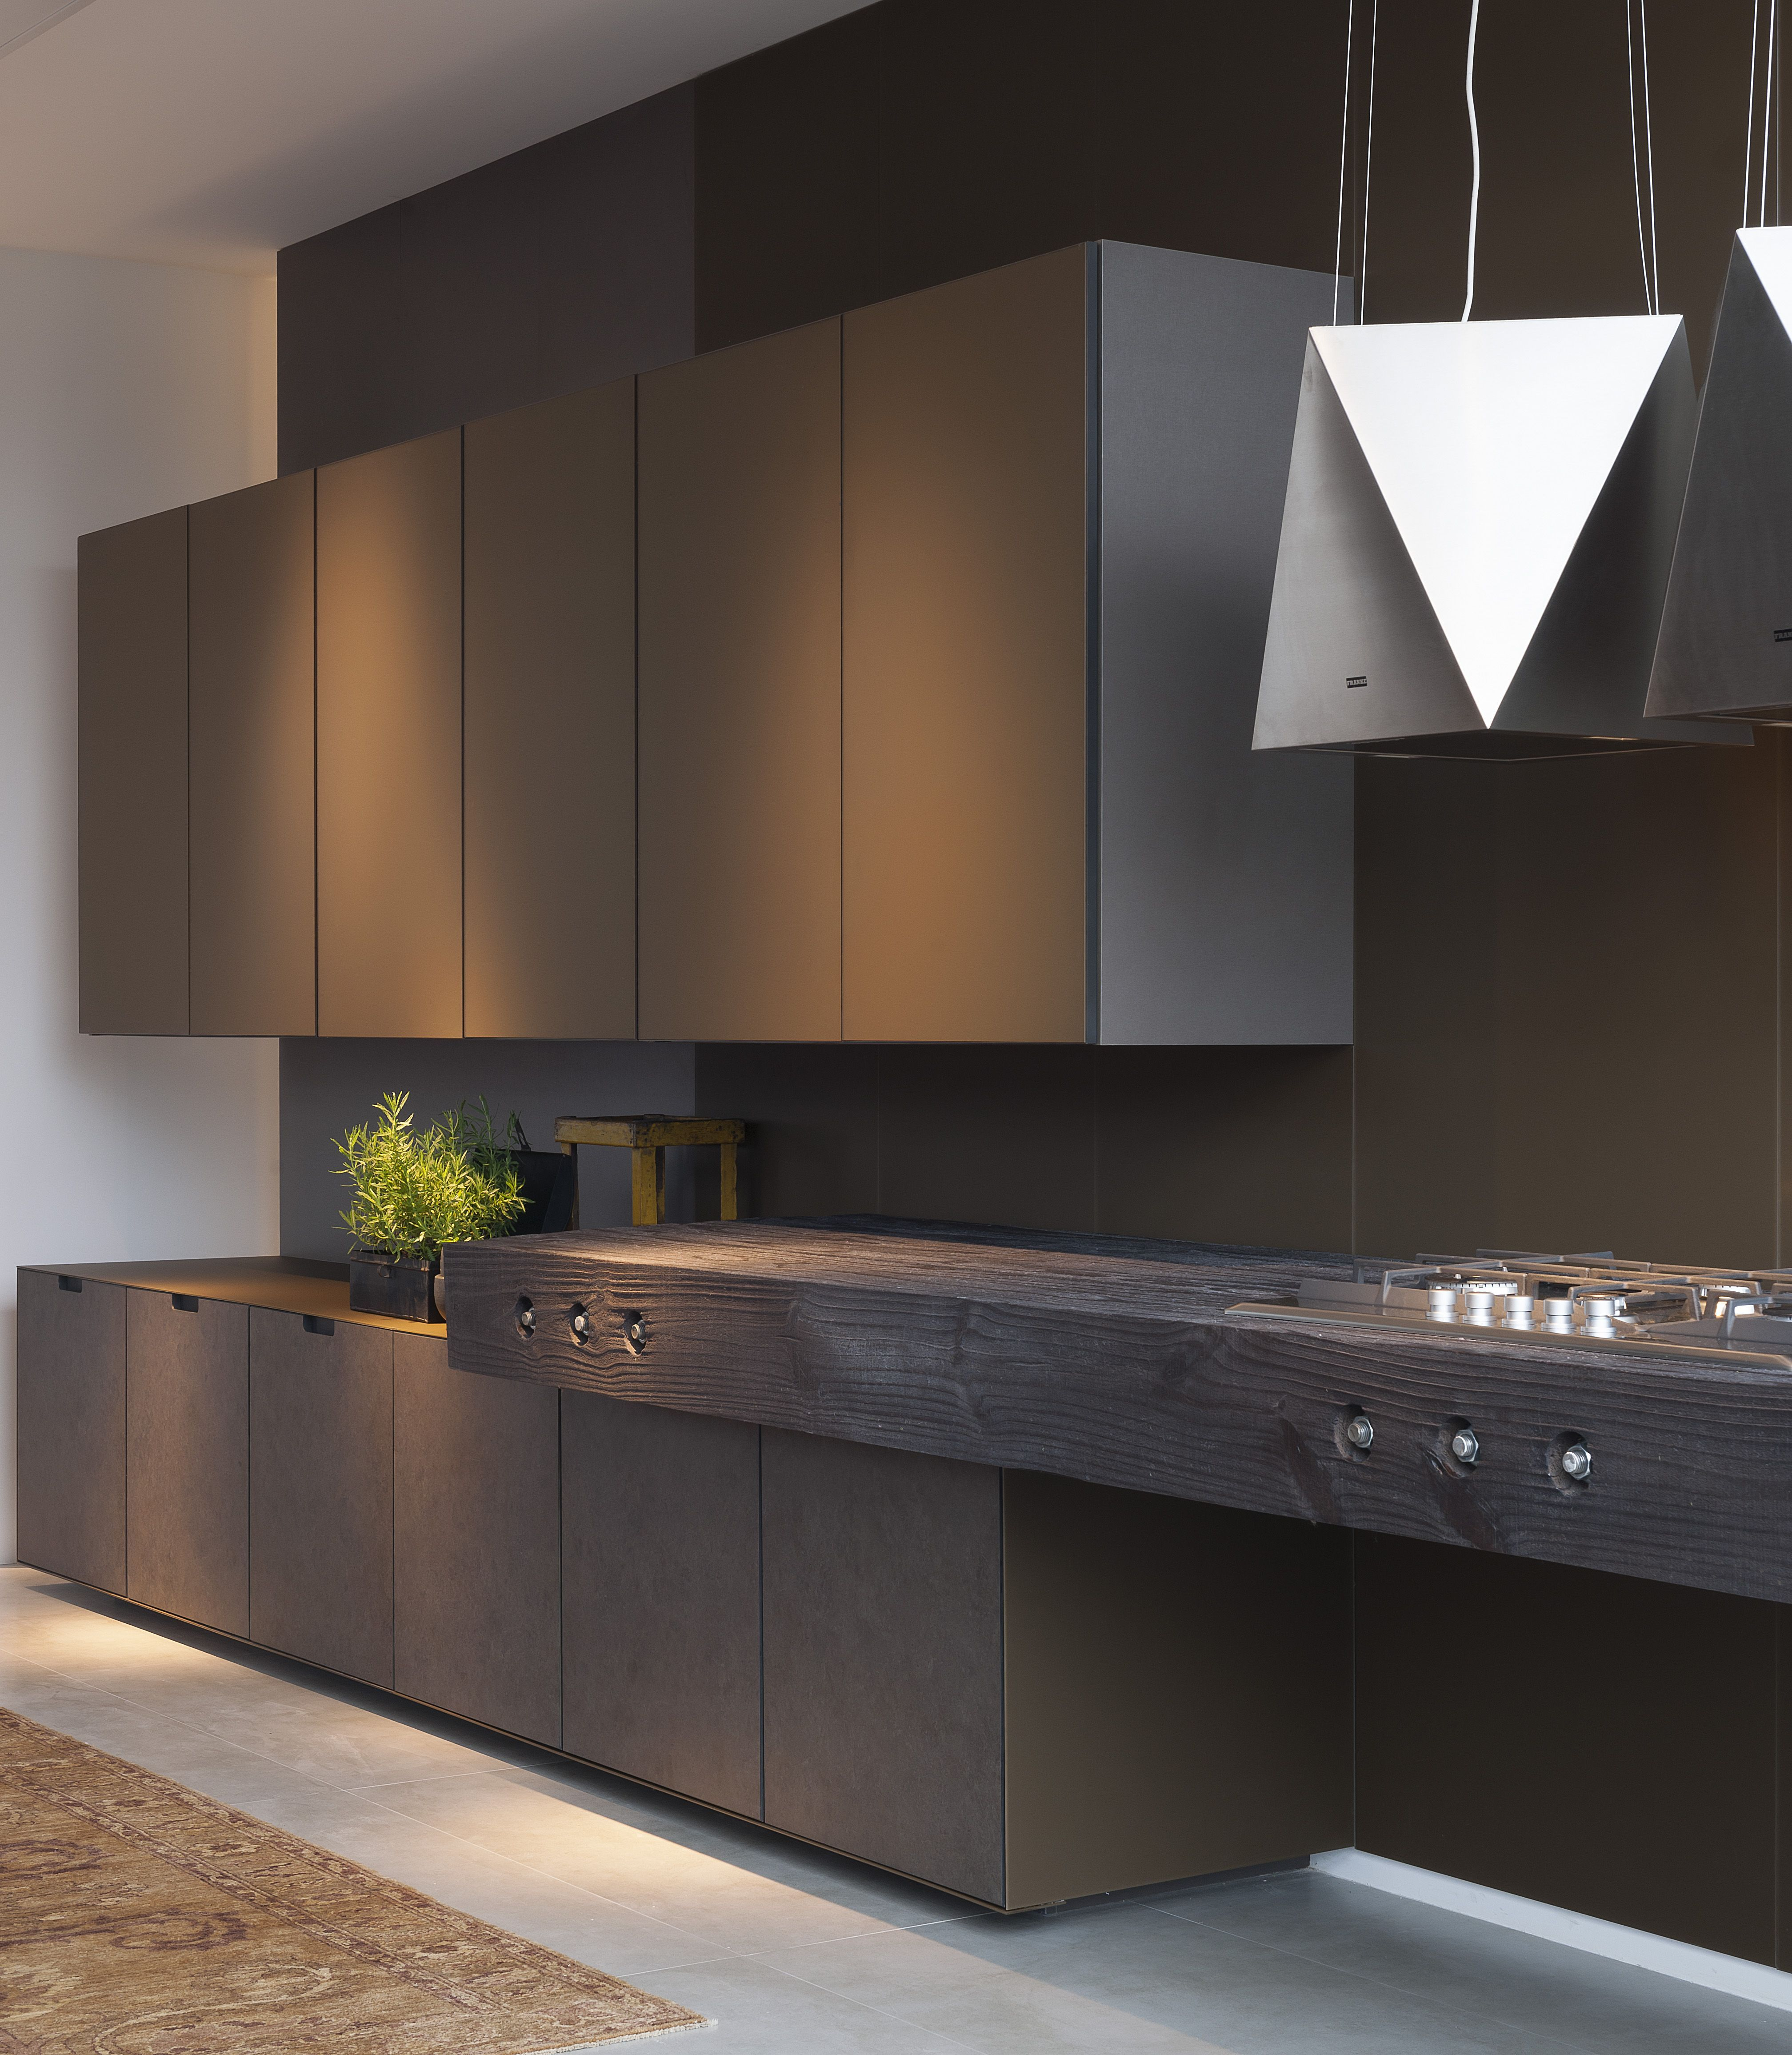 Contemporary kitchen designed with 2020 Design software - NKBA